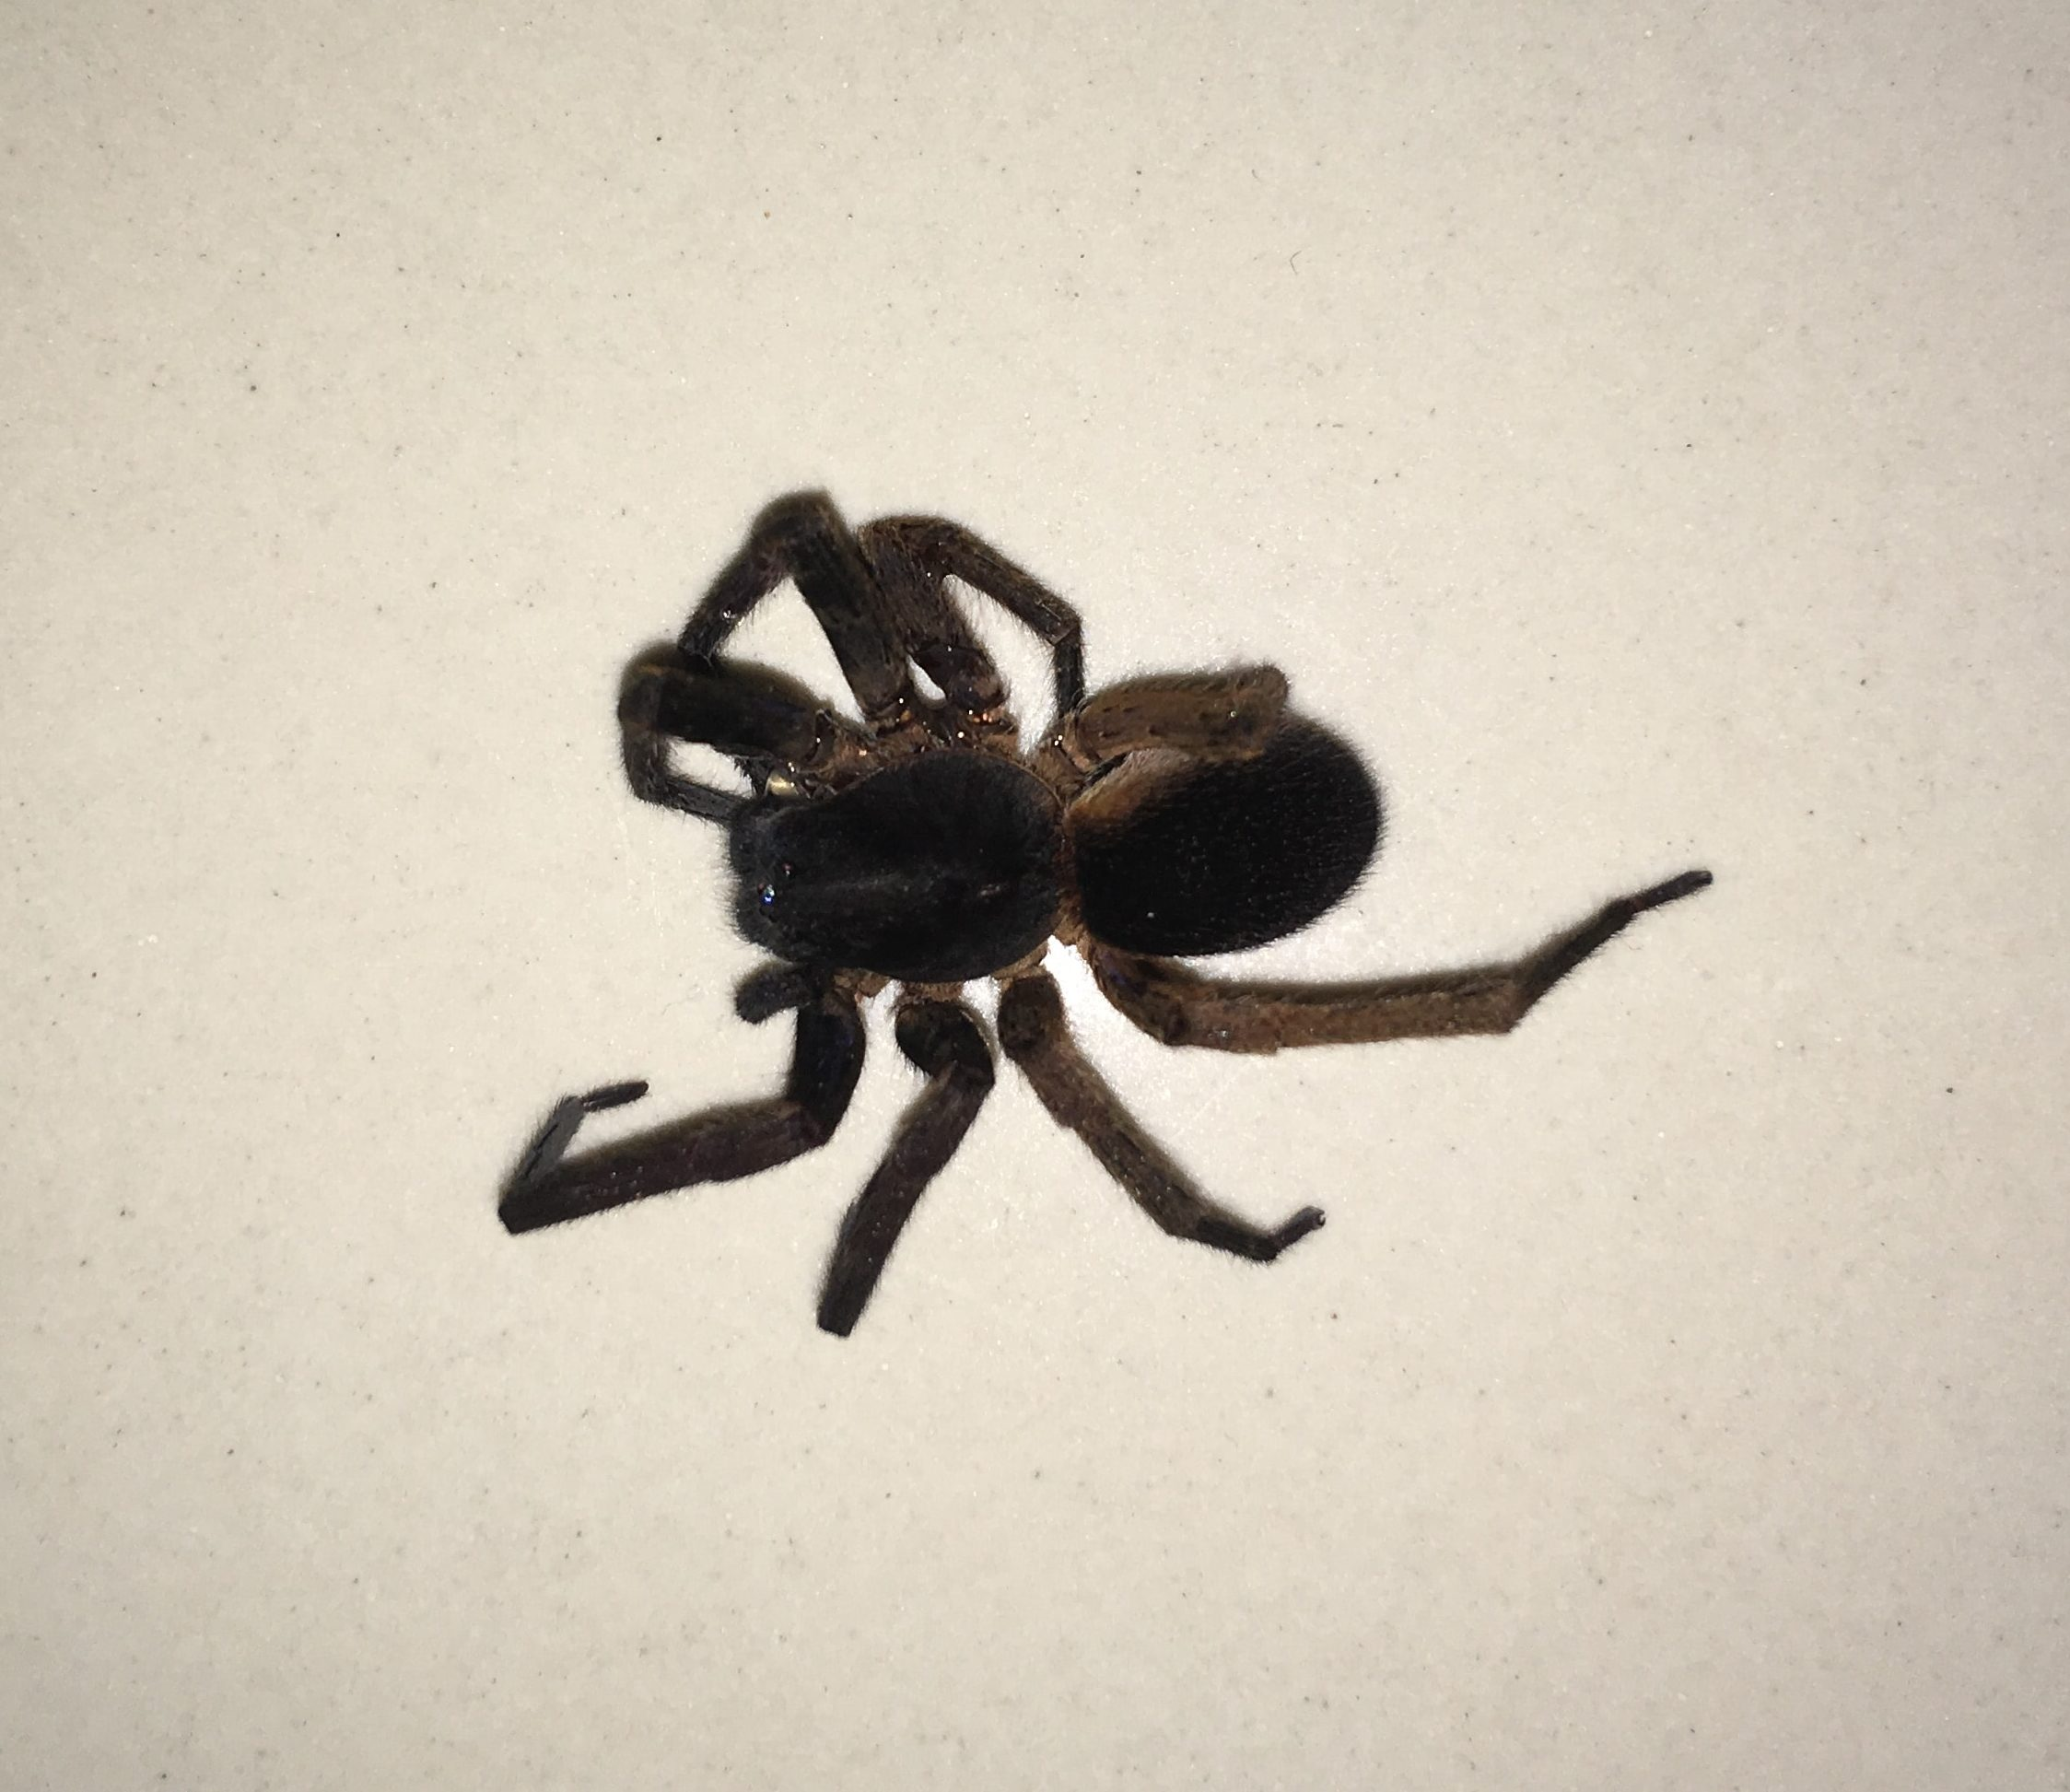 Picture of Ctenus (Tropical Wolf Spiders) - Dorsal